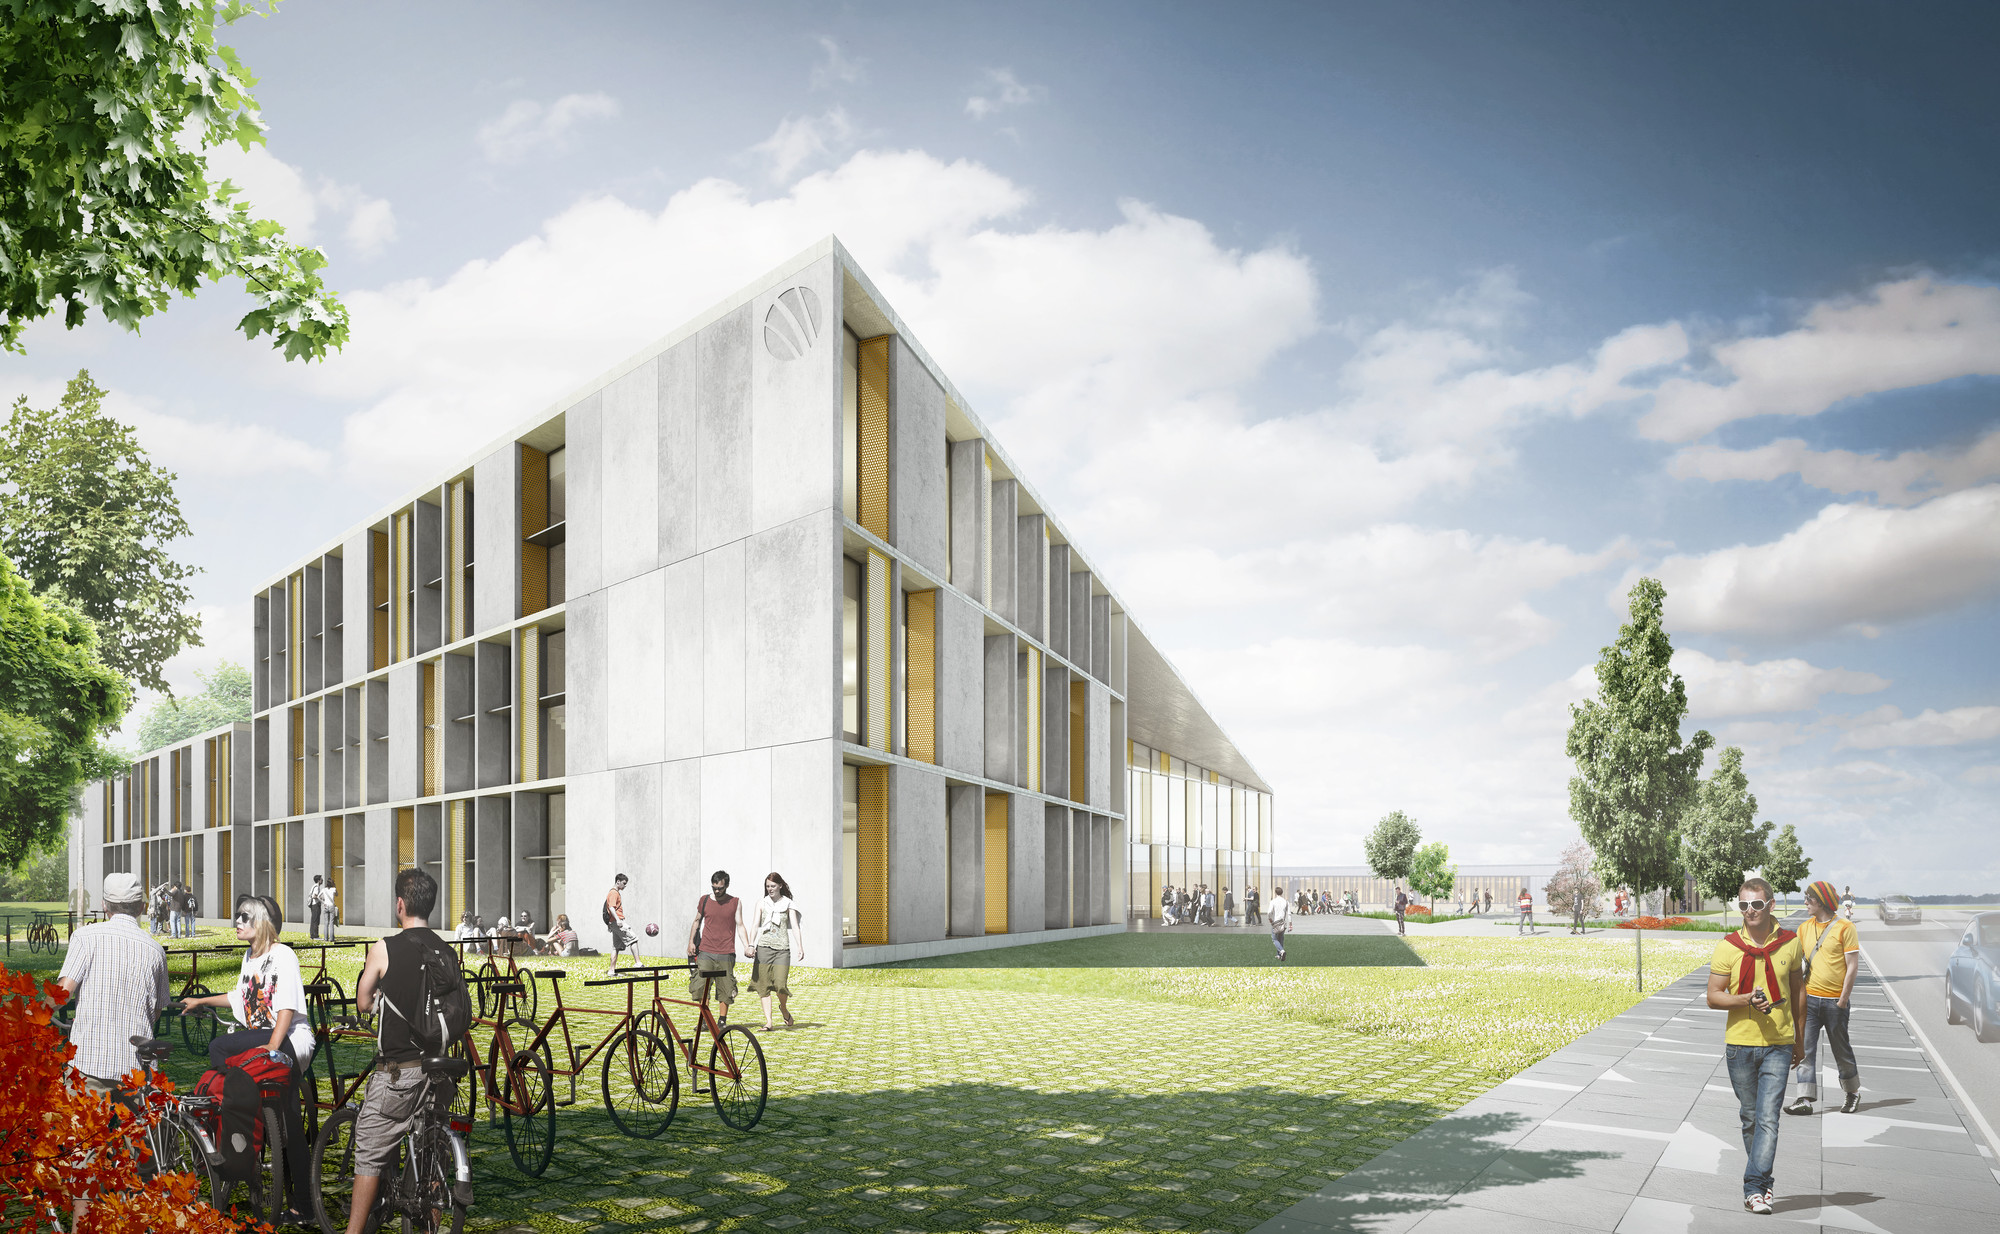 C.F. Møller Selected to Design Vocational School in Denmark, Courtesy of C.F. Møller Architects